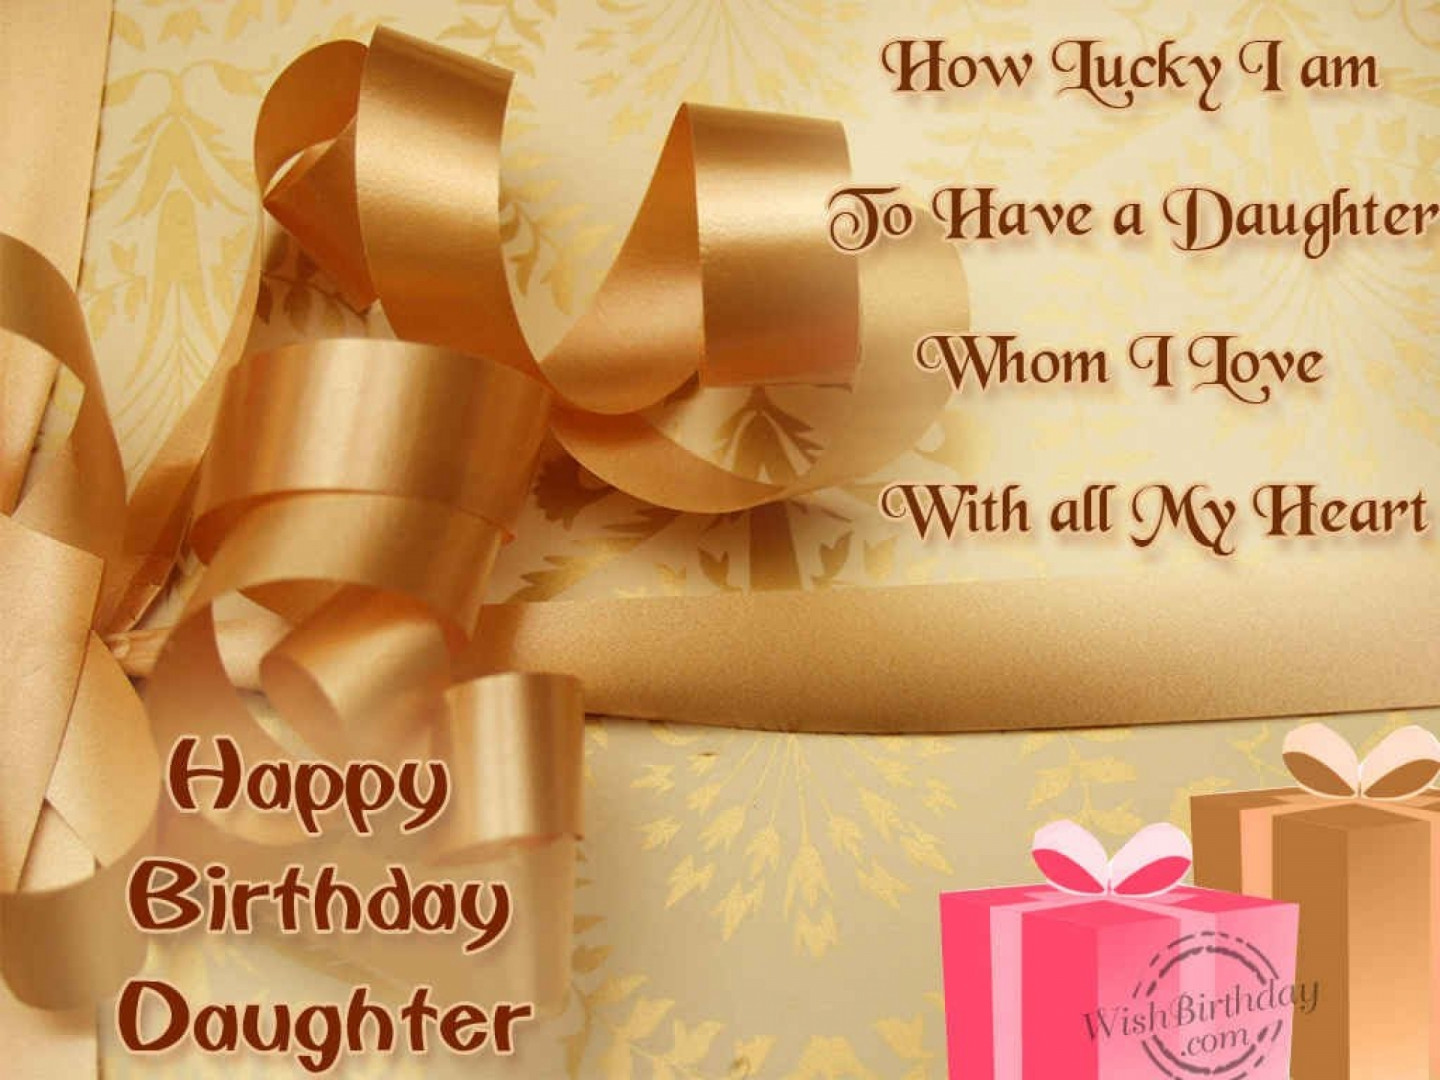 happy birthday wishes pictures free download ; elegant-happy-birthday-wishes-daughter-images-desktop-wallpapers-hd-quotes-of-happy-birthday-images-free-download-for-mobile